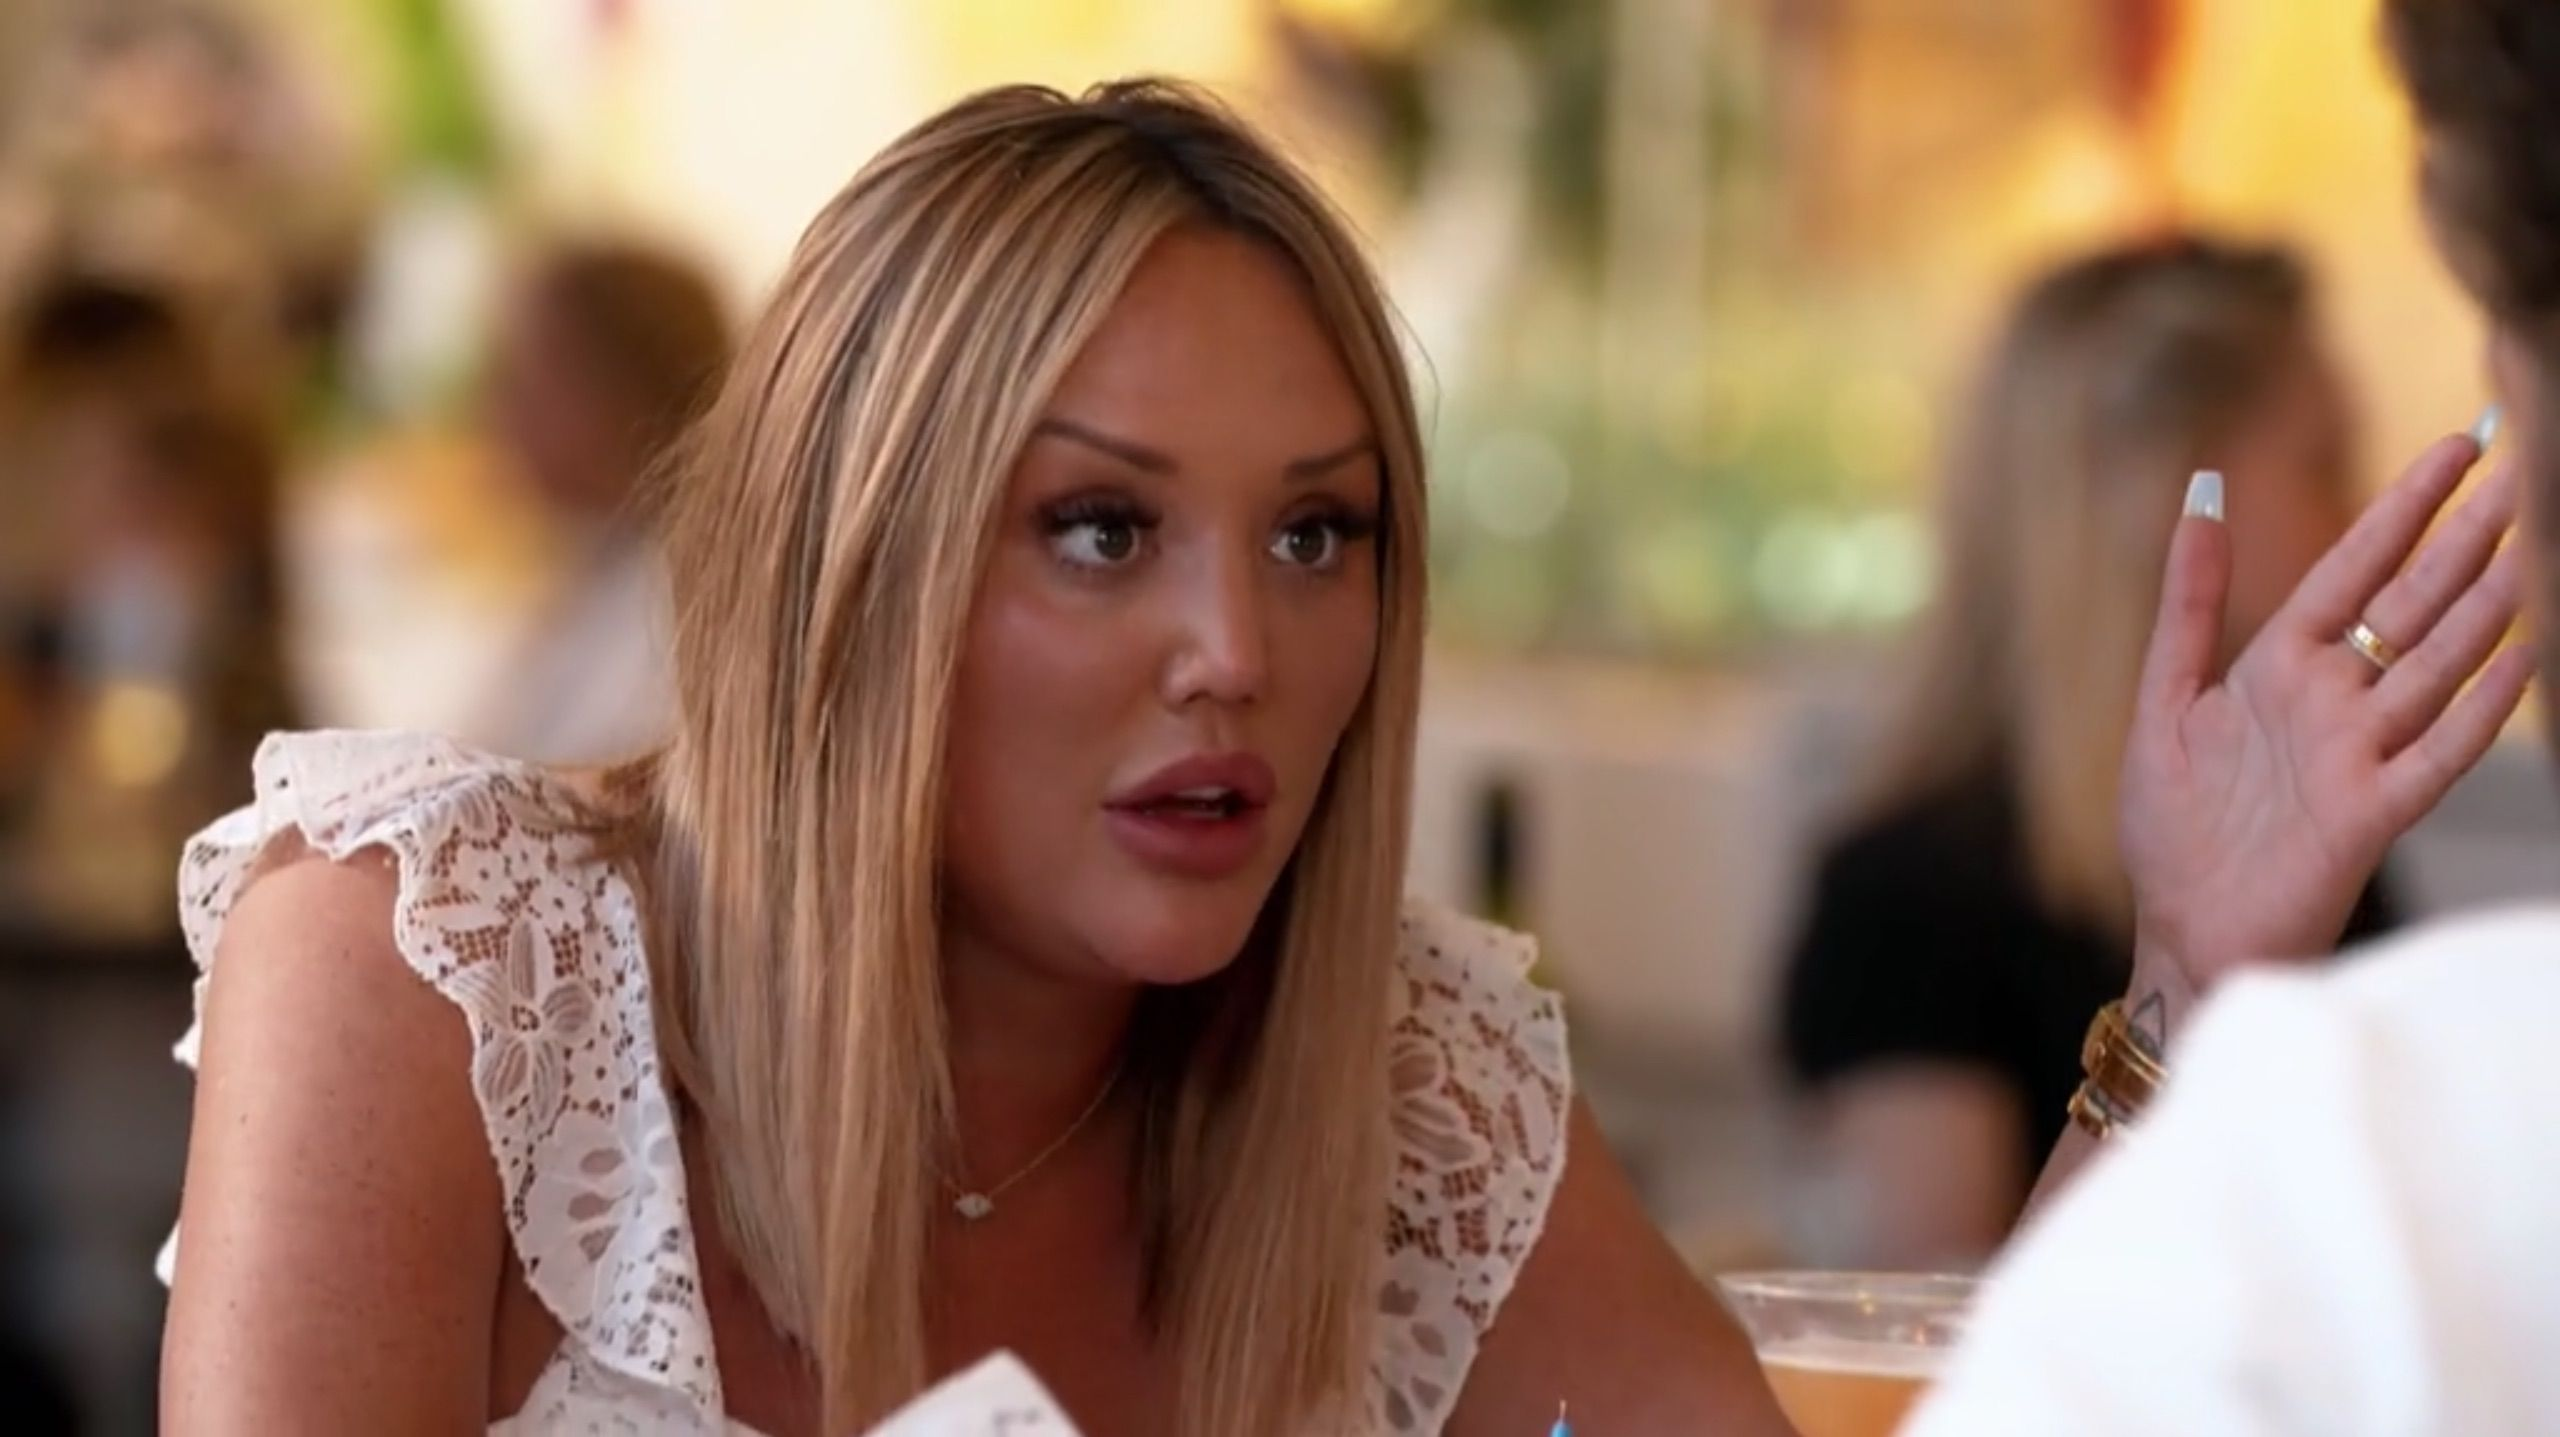 Celebs Go Dating's Charlotte Crosby has a tearful breakdown